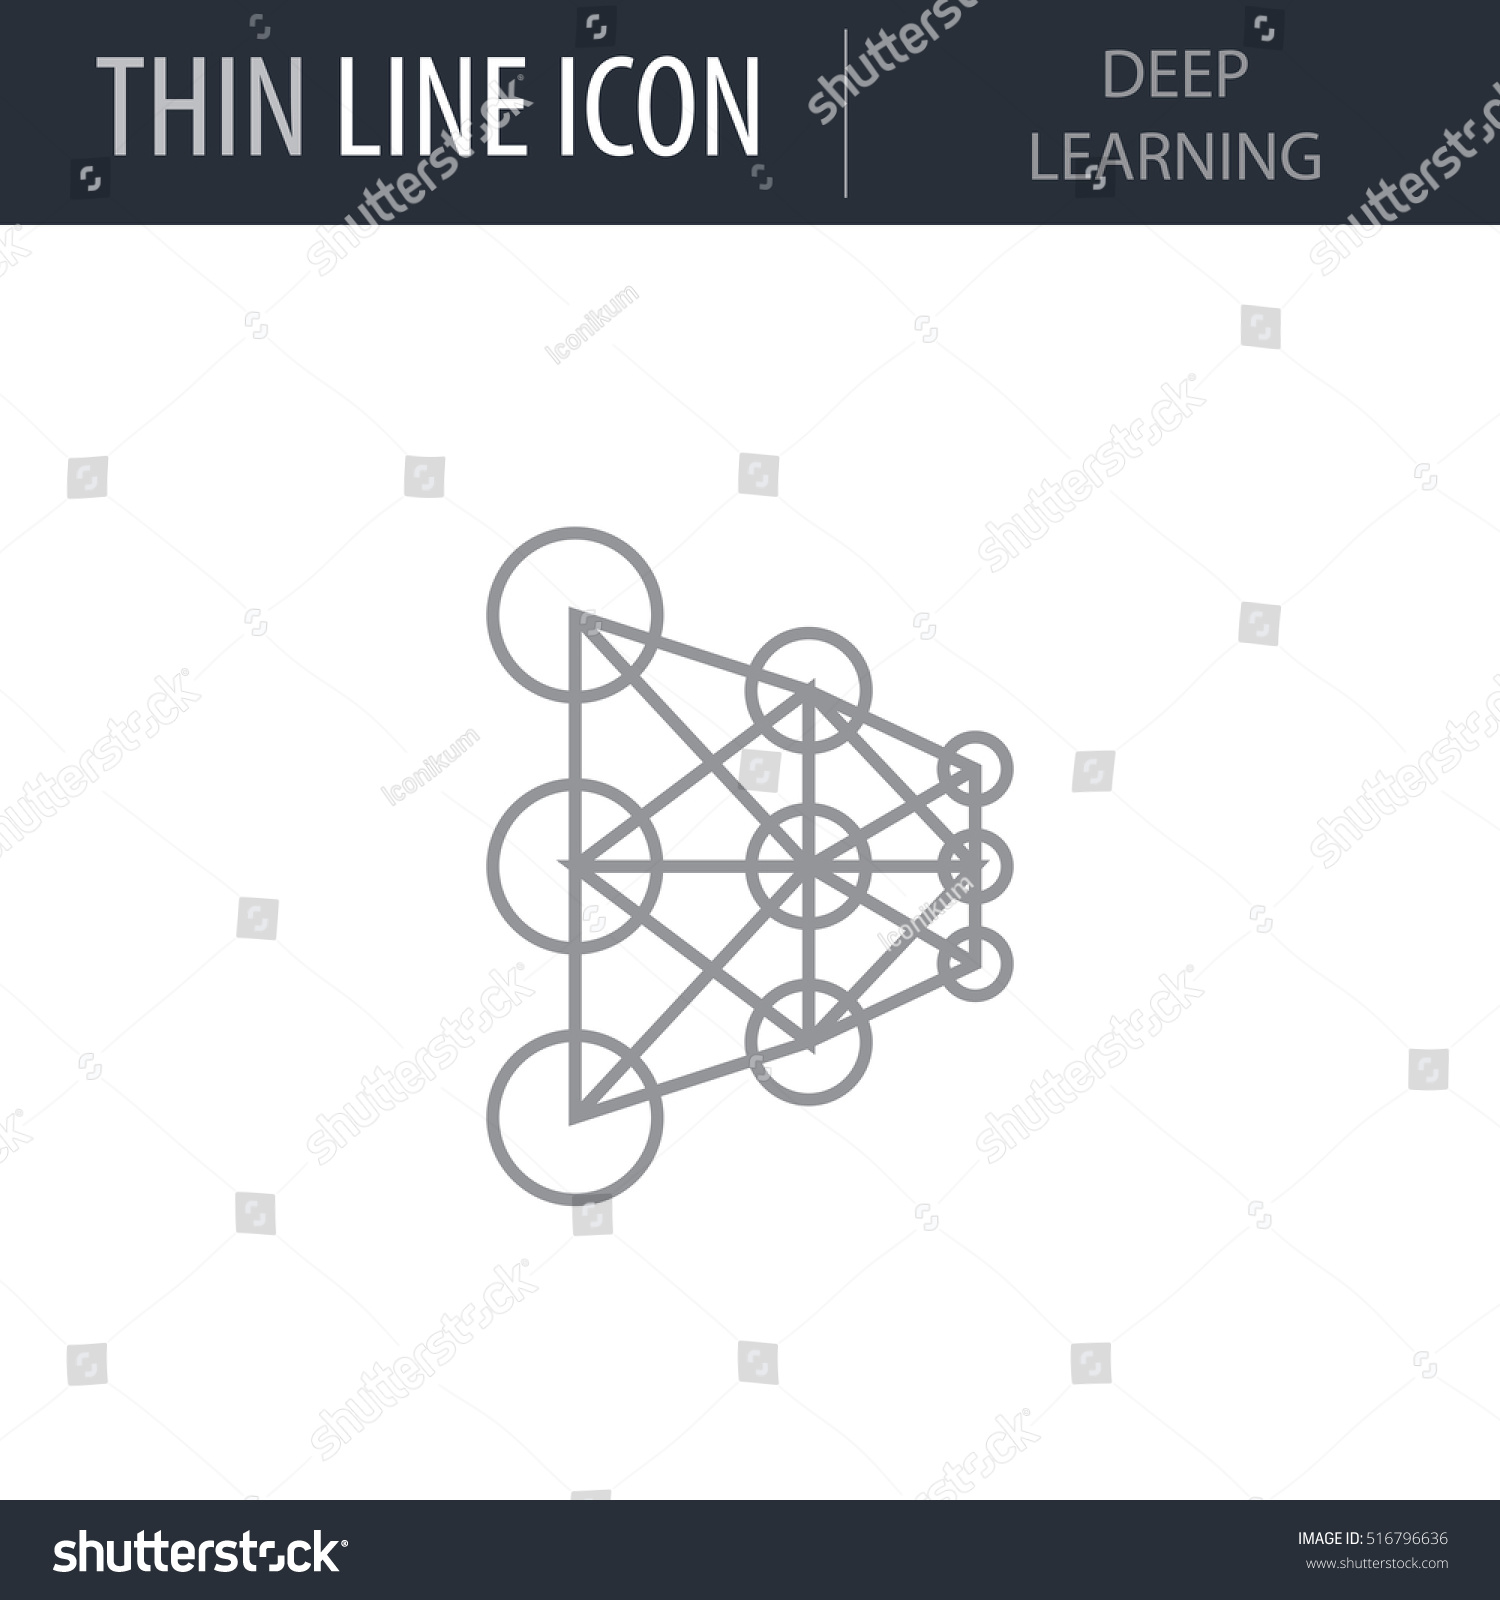 Symbol deep learning thin line icon stock vector 516796636 symbol of deep learning thin line icon of data science stroke pictogram graphic for web buycottarizona Image collections